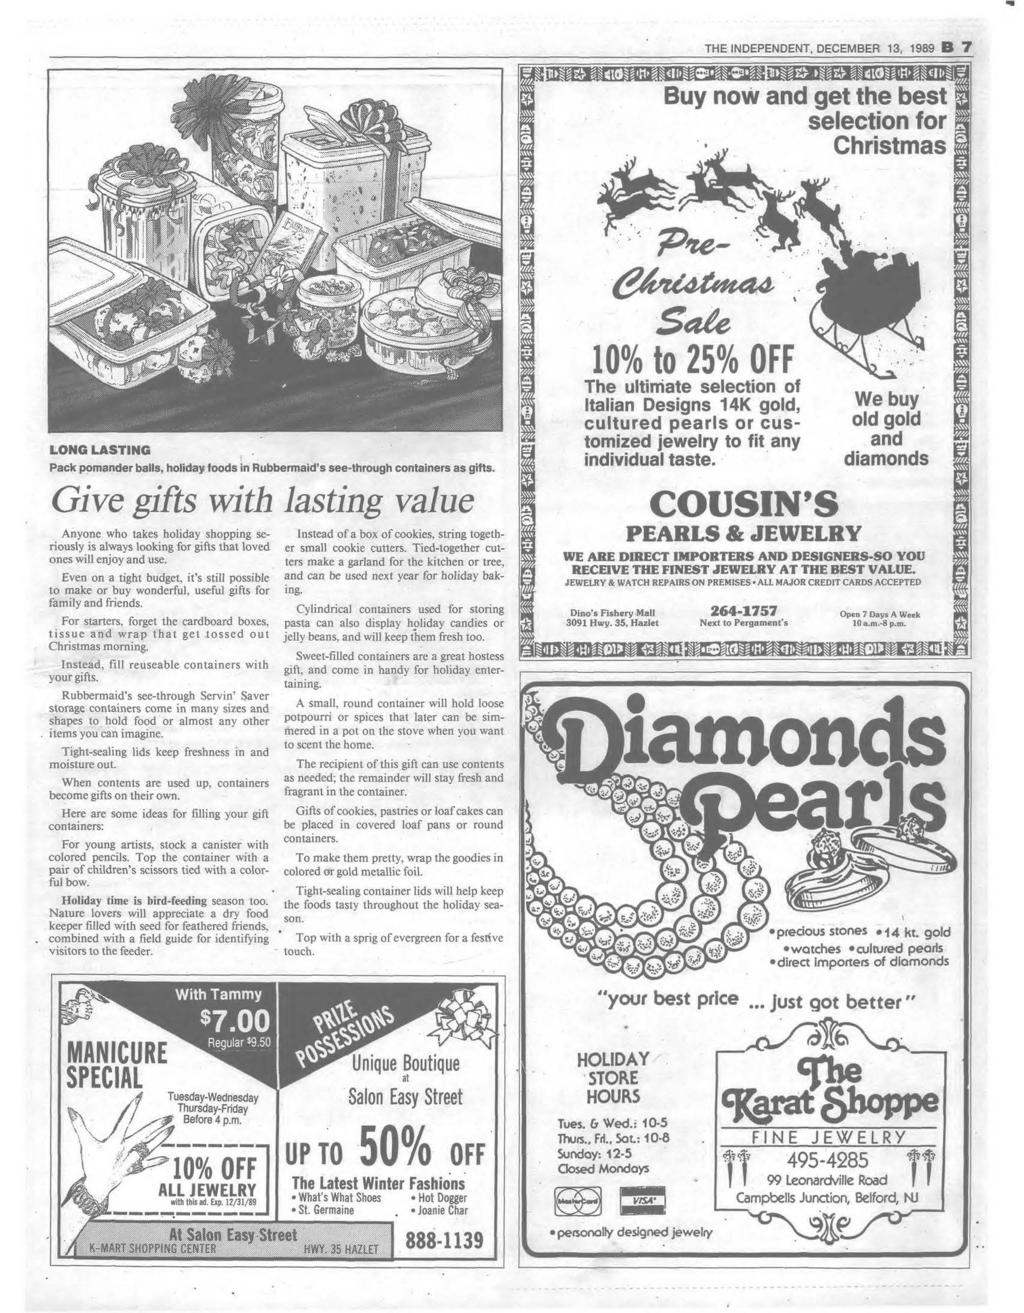 THE INDEPENDENT, DECEM BER 13, 1989 B 7 Buy now and get the best selection for Christmas 'P n e - L O N G L A S T I N G > Pack pomander balls, holiday foods in Rubbermaid s see-through containers as